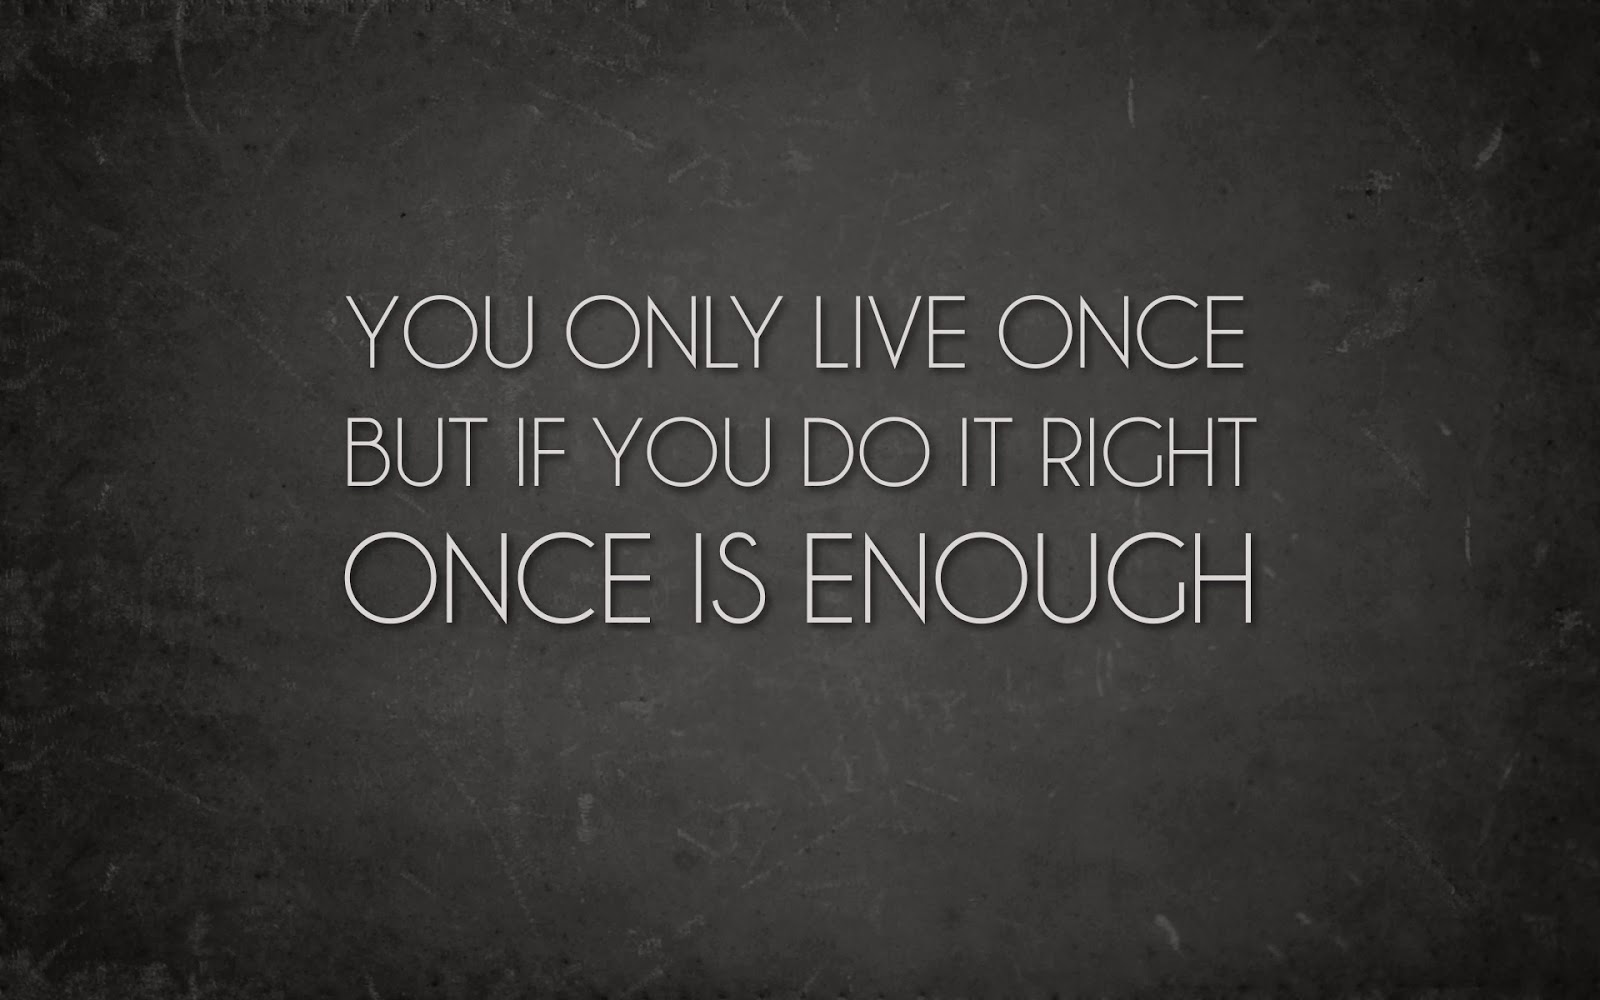 """You only live once but if you do it right, once is enough"""